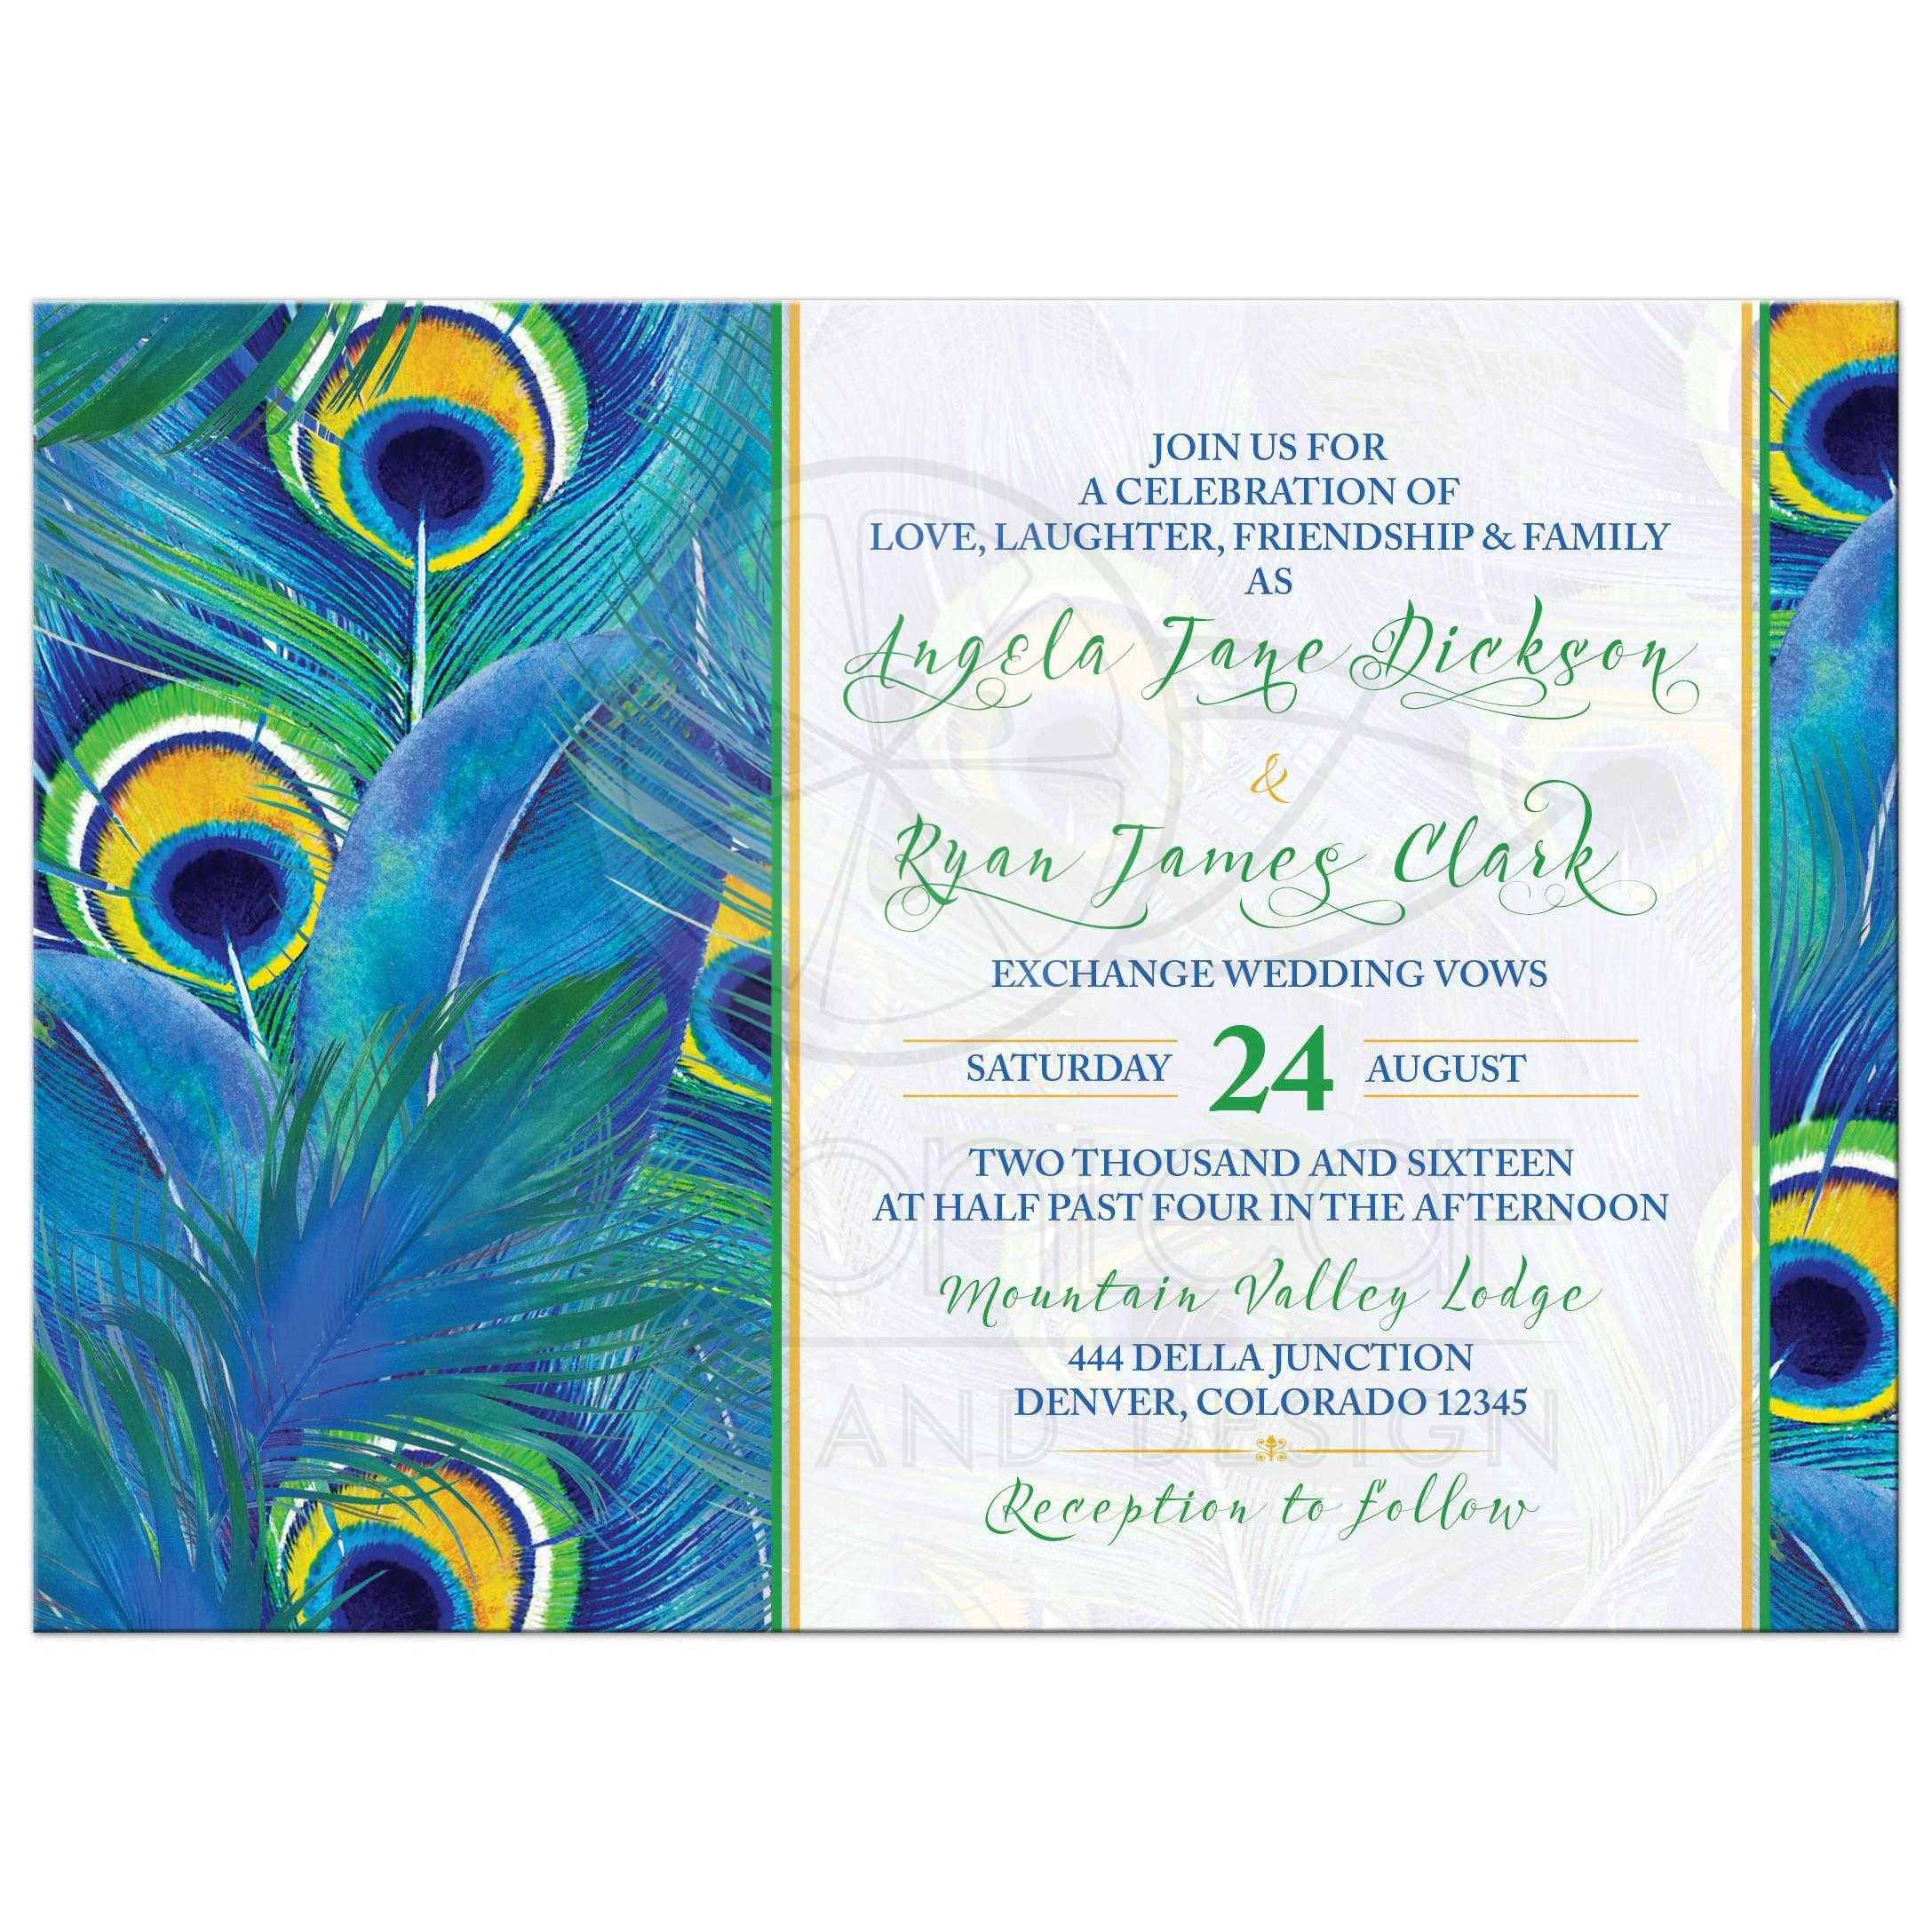 Painted Couple Peacock Wedding Gifts Unique Delicate Home: Peacock Feather Wedding Invitation